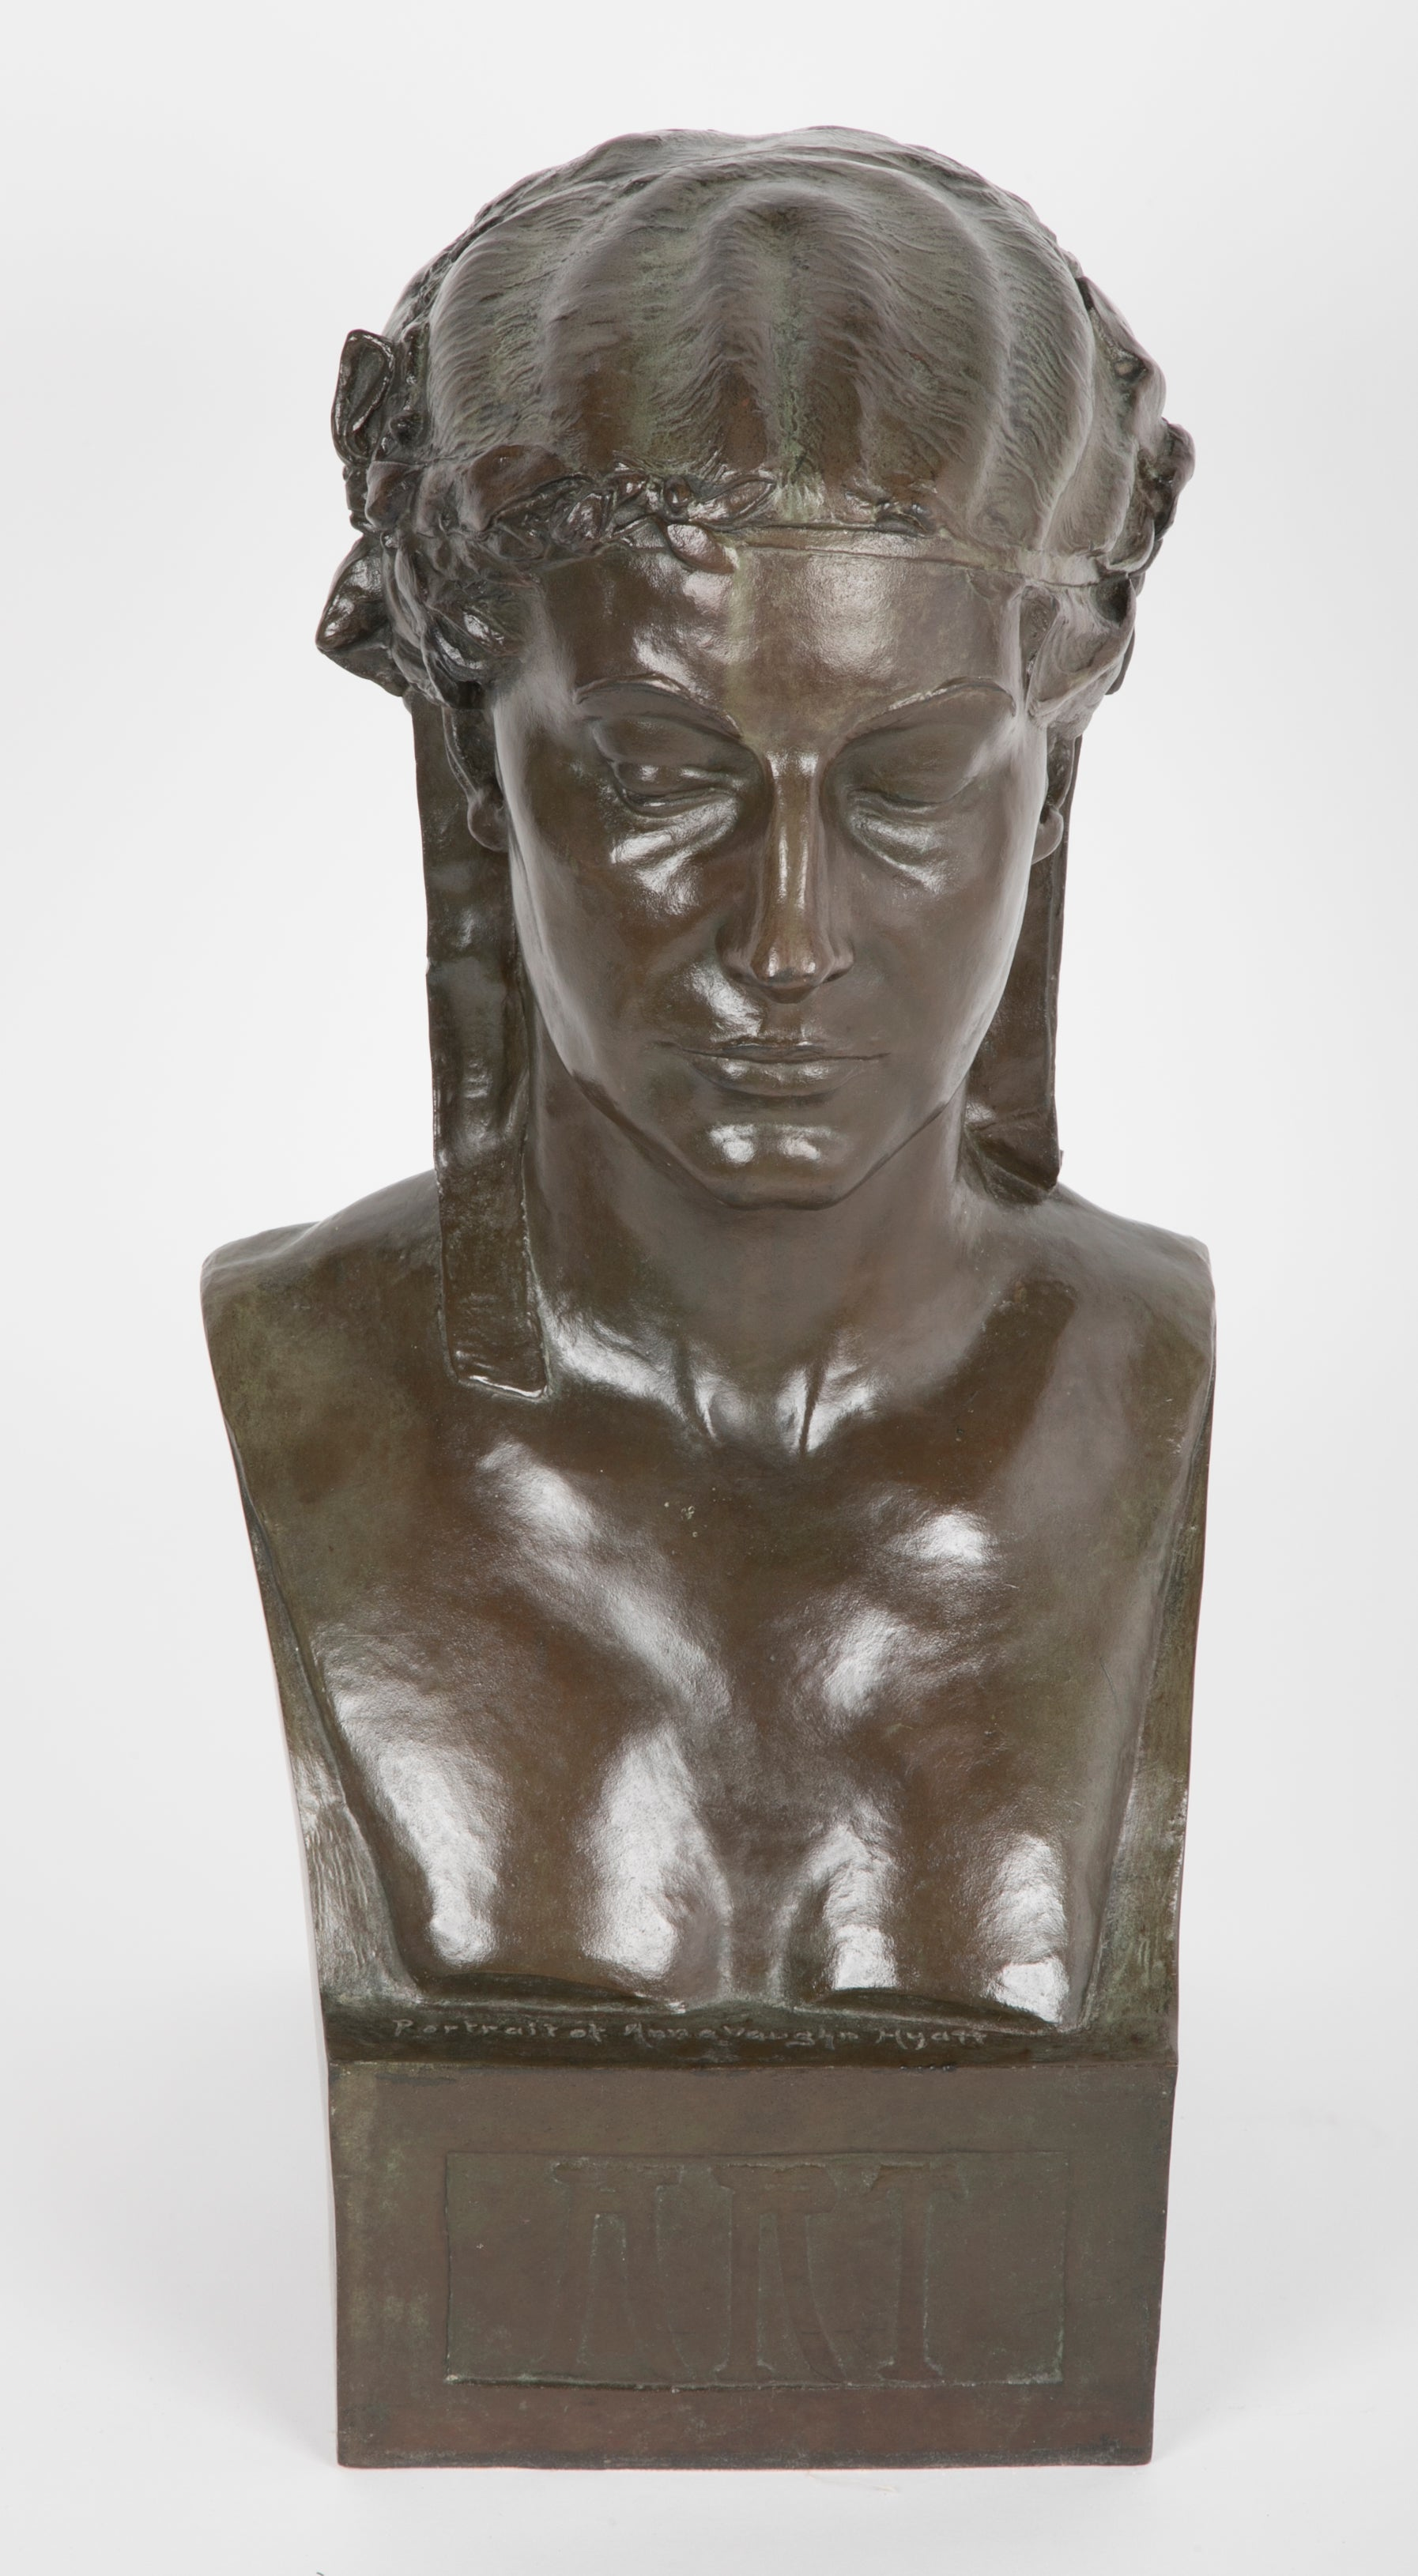 Two Sided Cast Bronze Bust by Harriet Hyatt Mayer